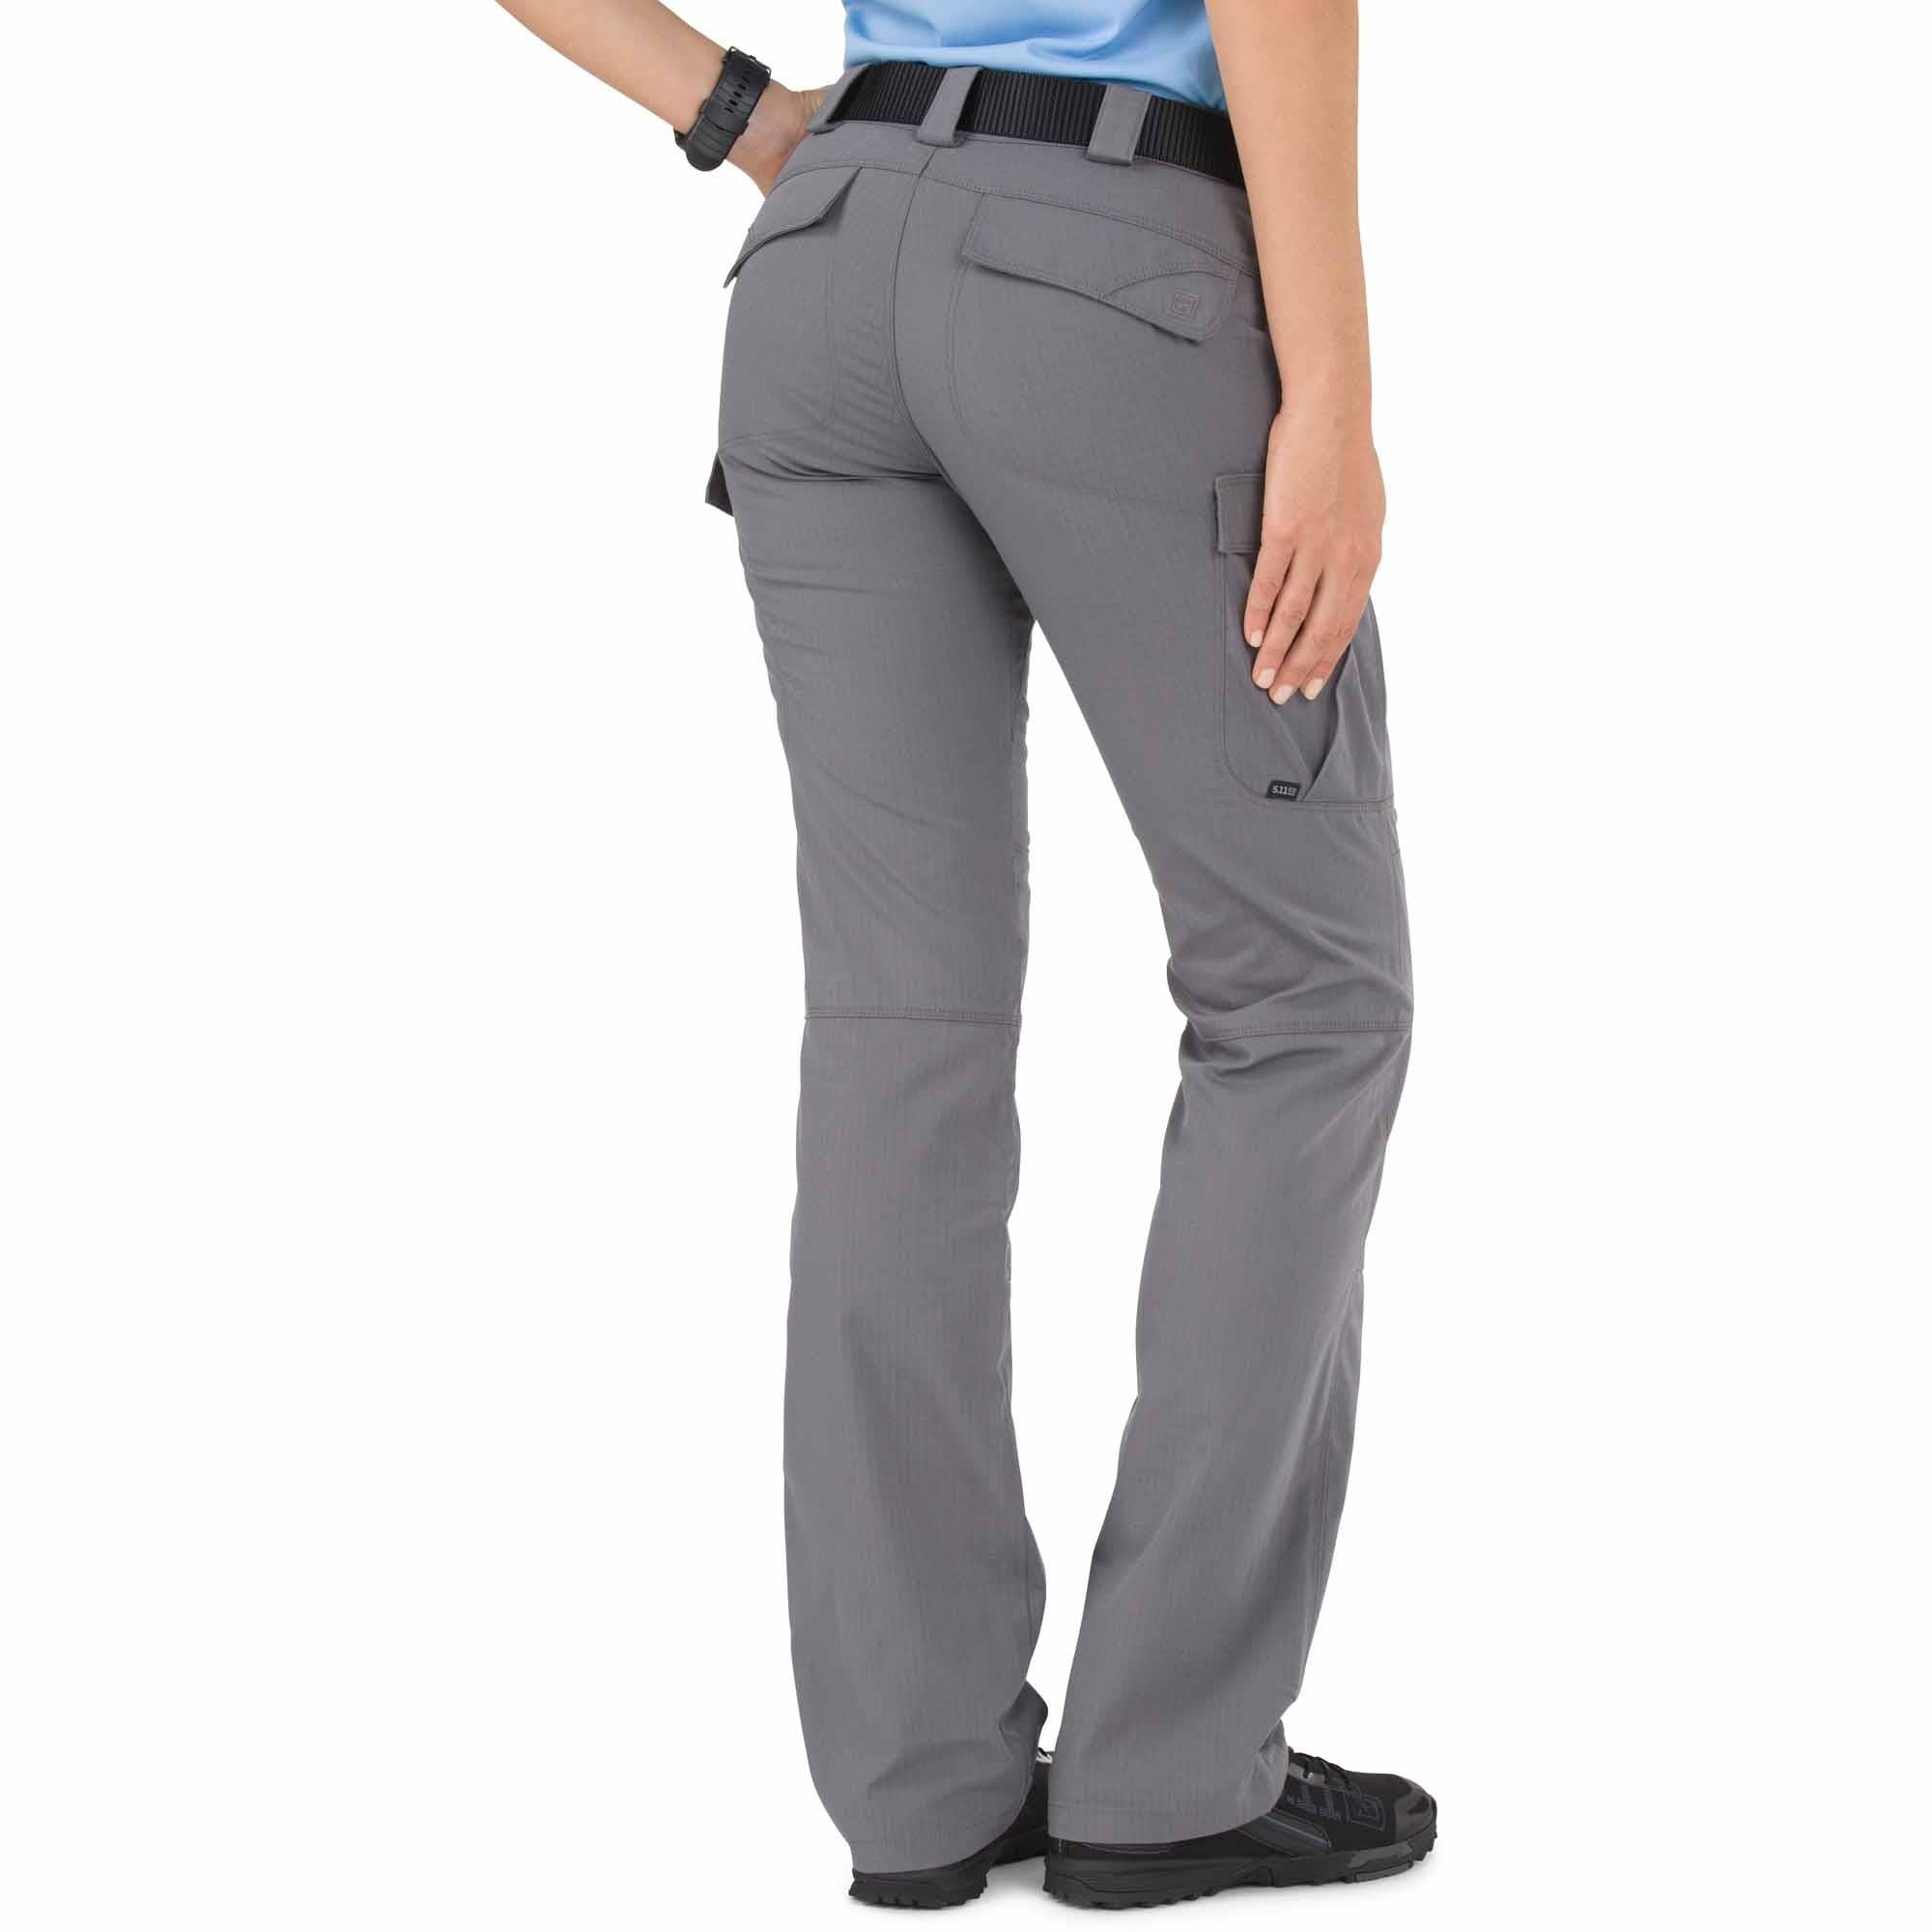 22803527dcc92 5.11 Tactical Stryke Pants Women s. 5.11 Stryke Pants Women s  5.11 Stryke Pants  Women s ...